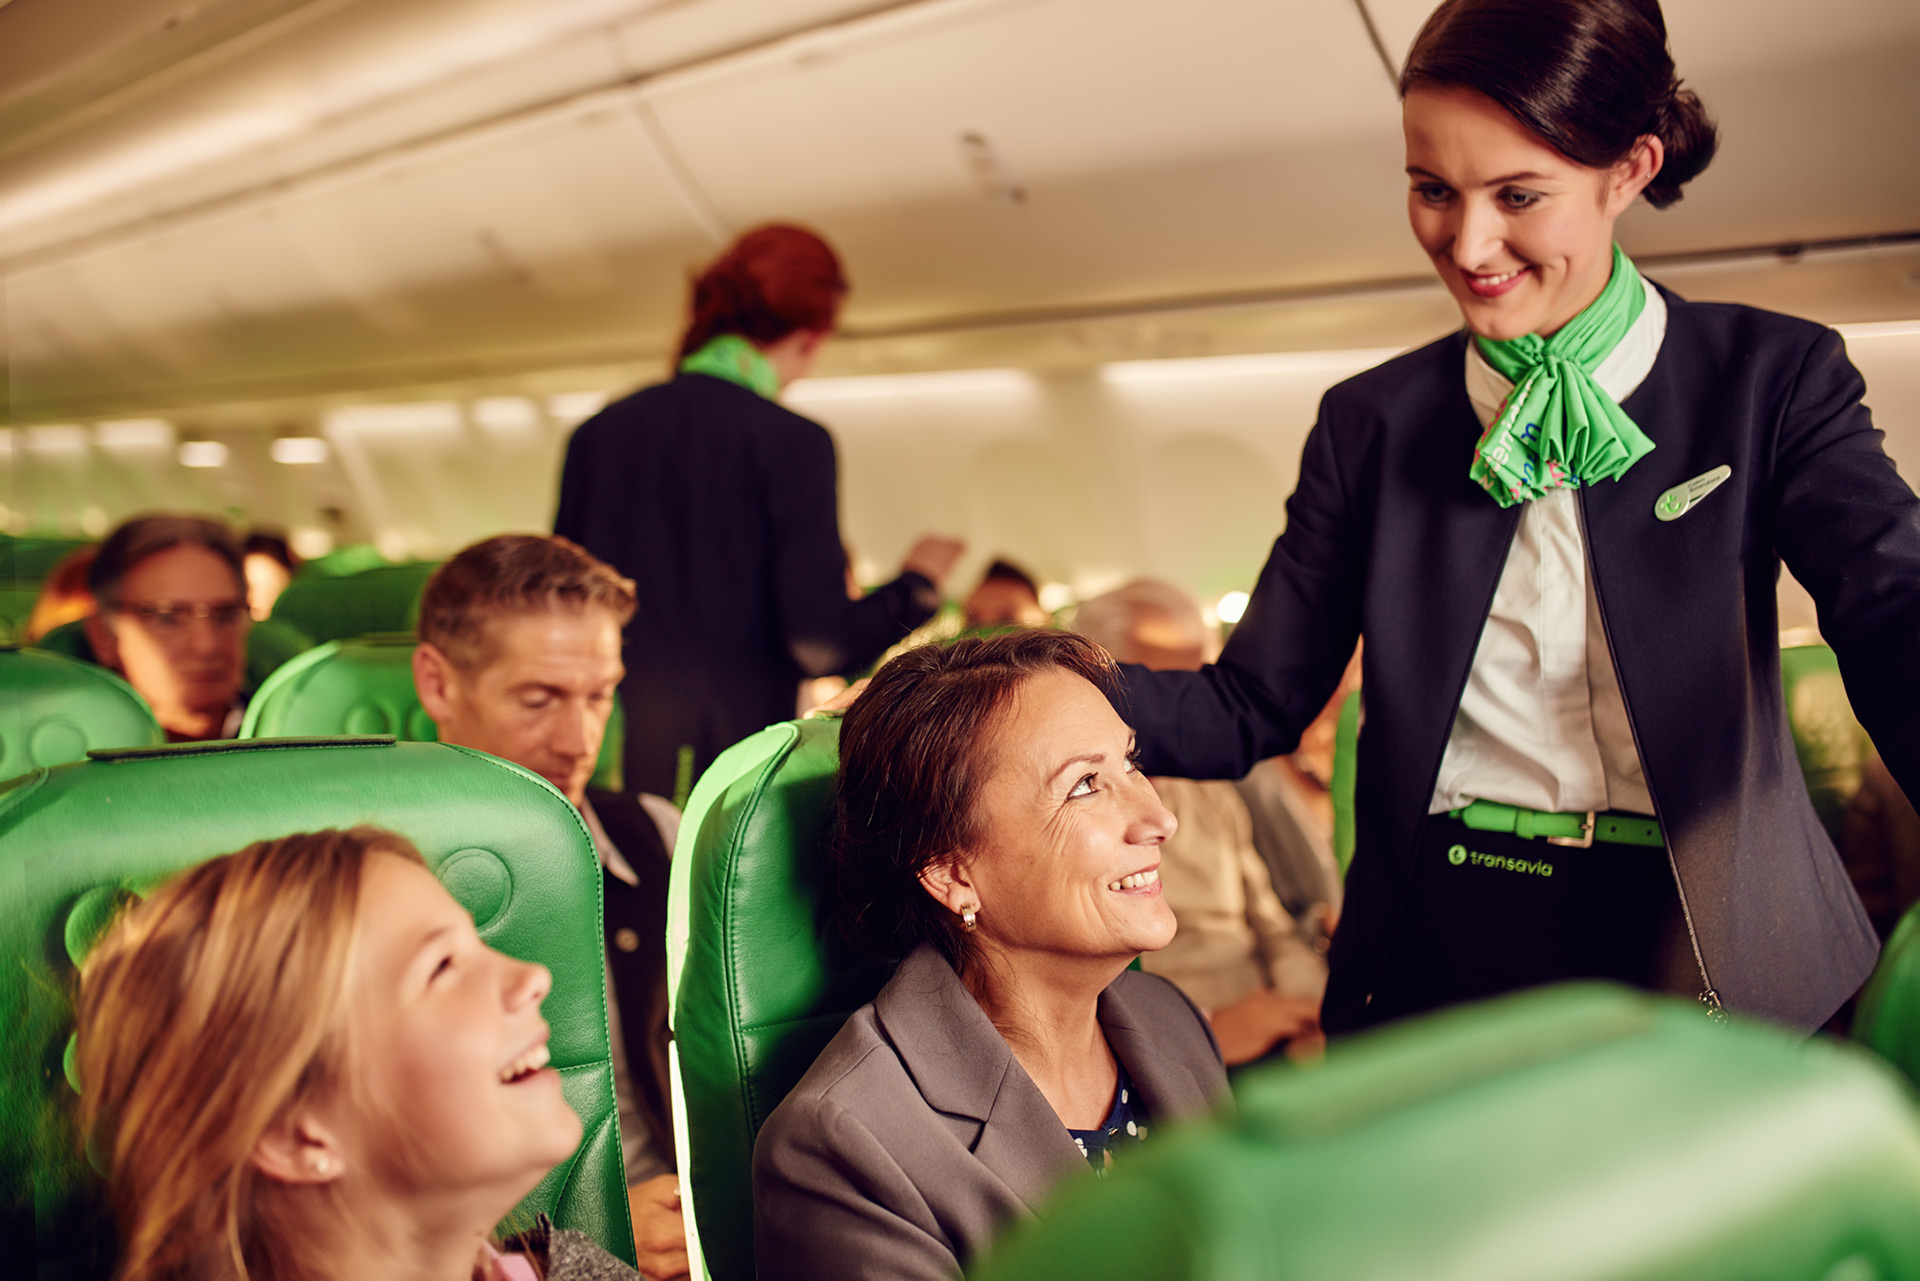 Cabin crew member talking to smiling passengers on a Trasavia filght